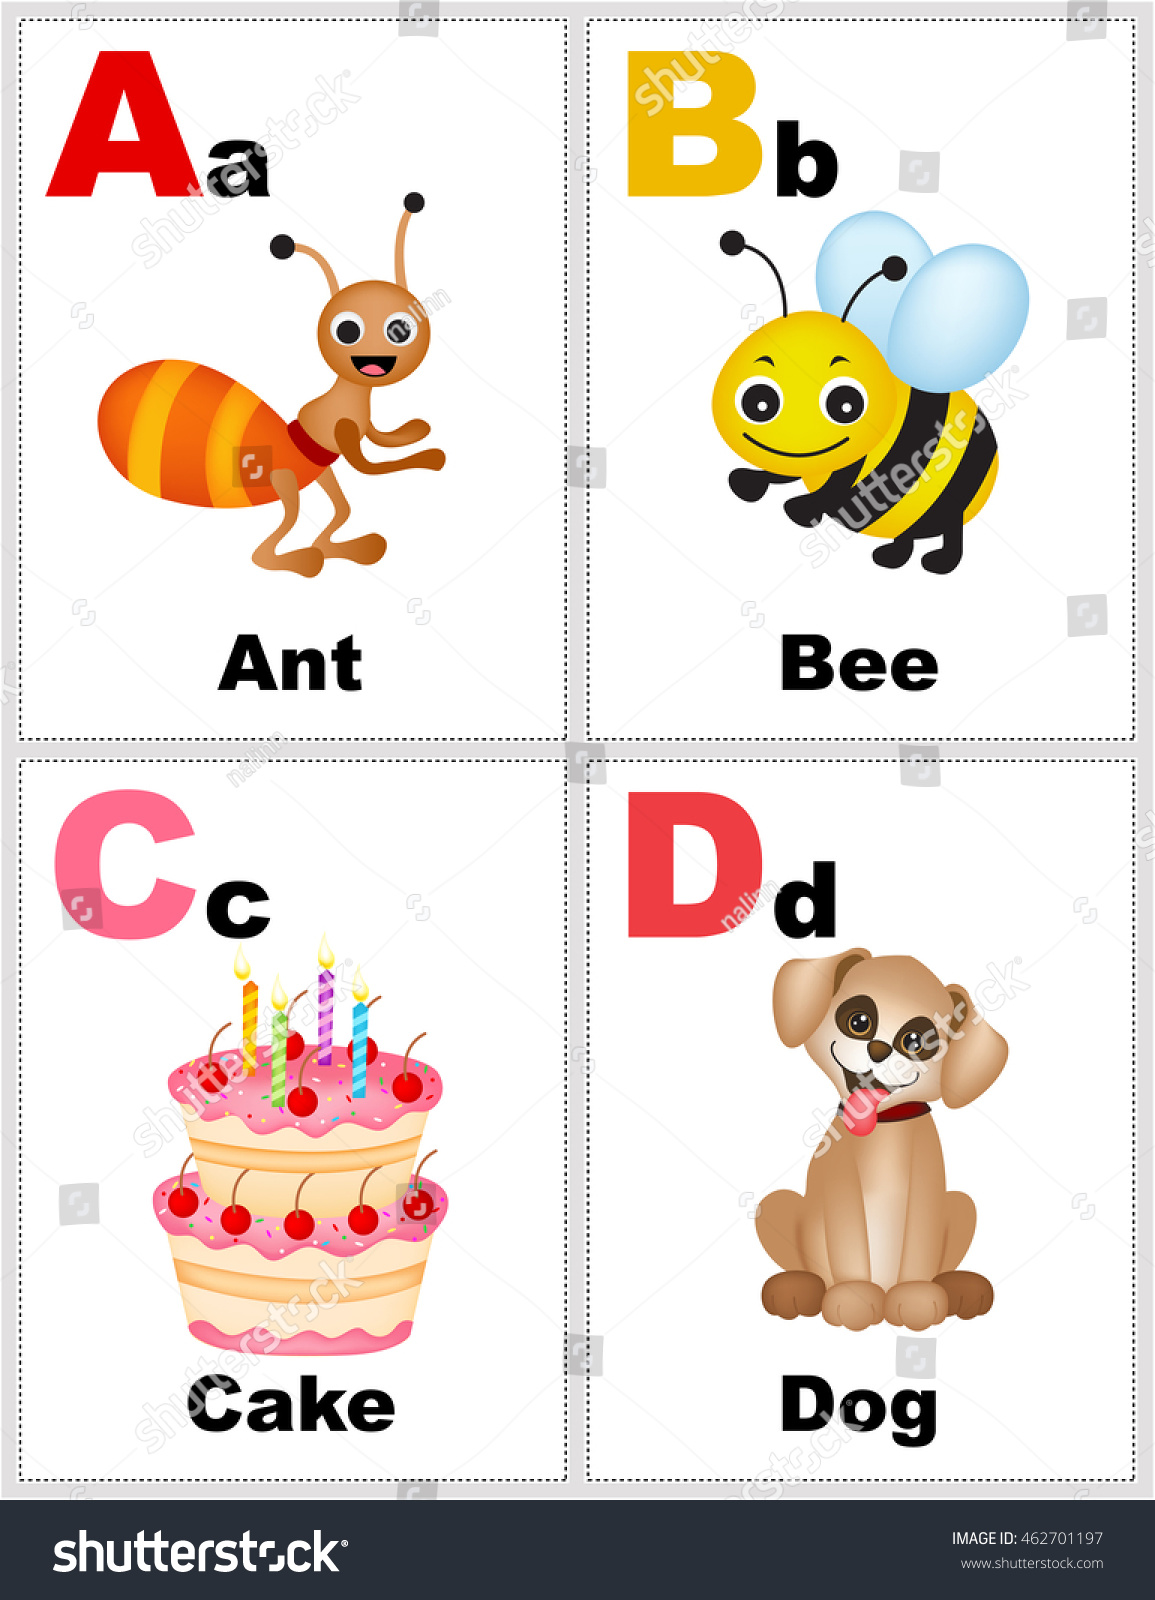 Alphabet Printable Flashcards Collection Letter Abcd Stock